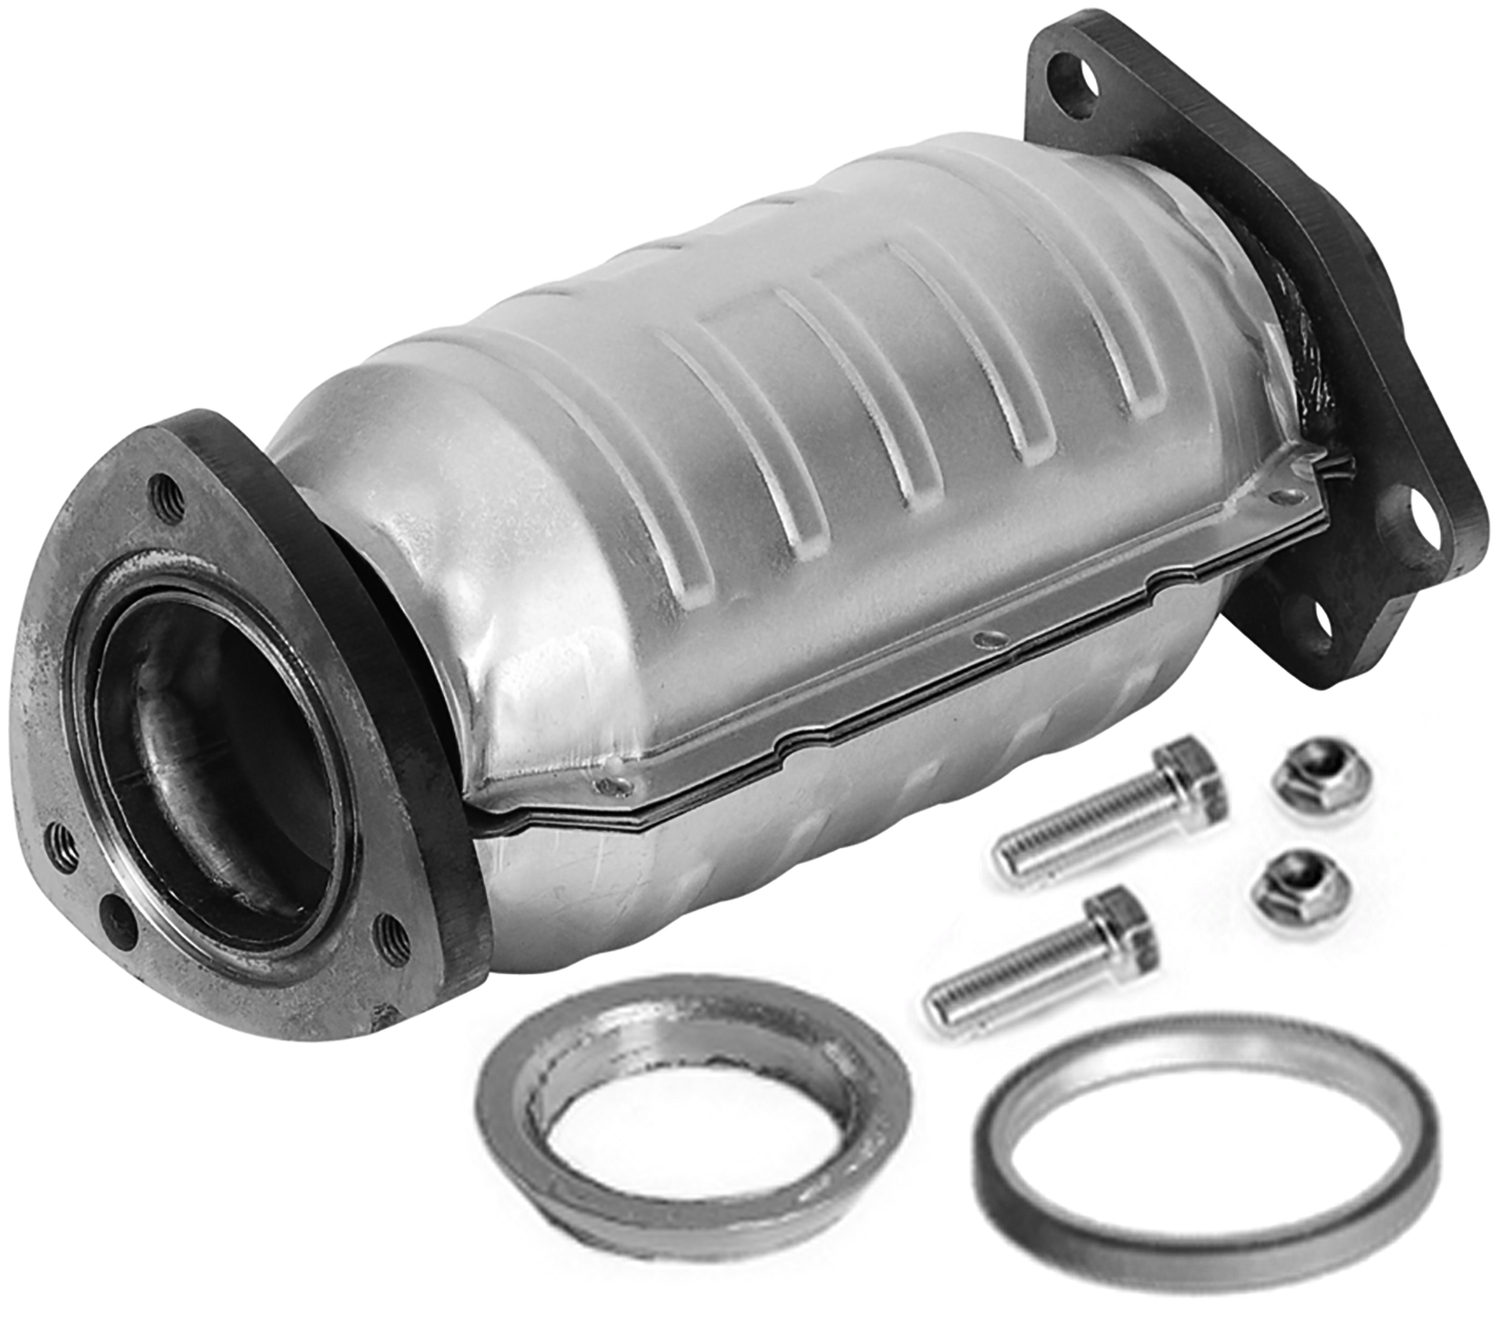 Magnaflow 5461226 | Pontiac Solstice | Saturn Sky | 2.4L | Direct-Fit California Catalytic Legal Converter OBDII | EO# D-193-140 -actual product photo